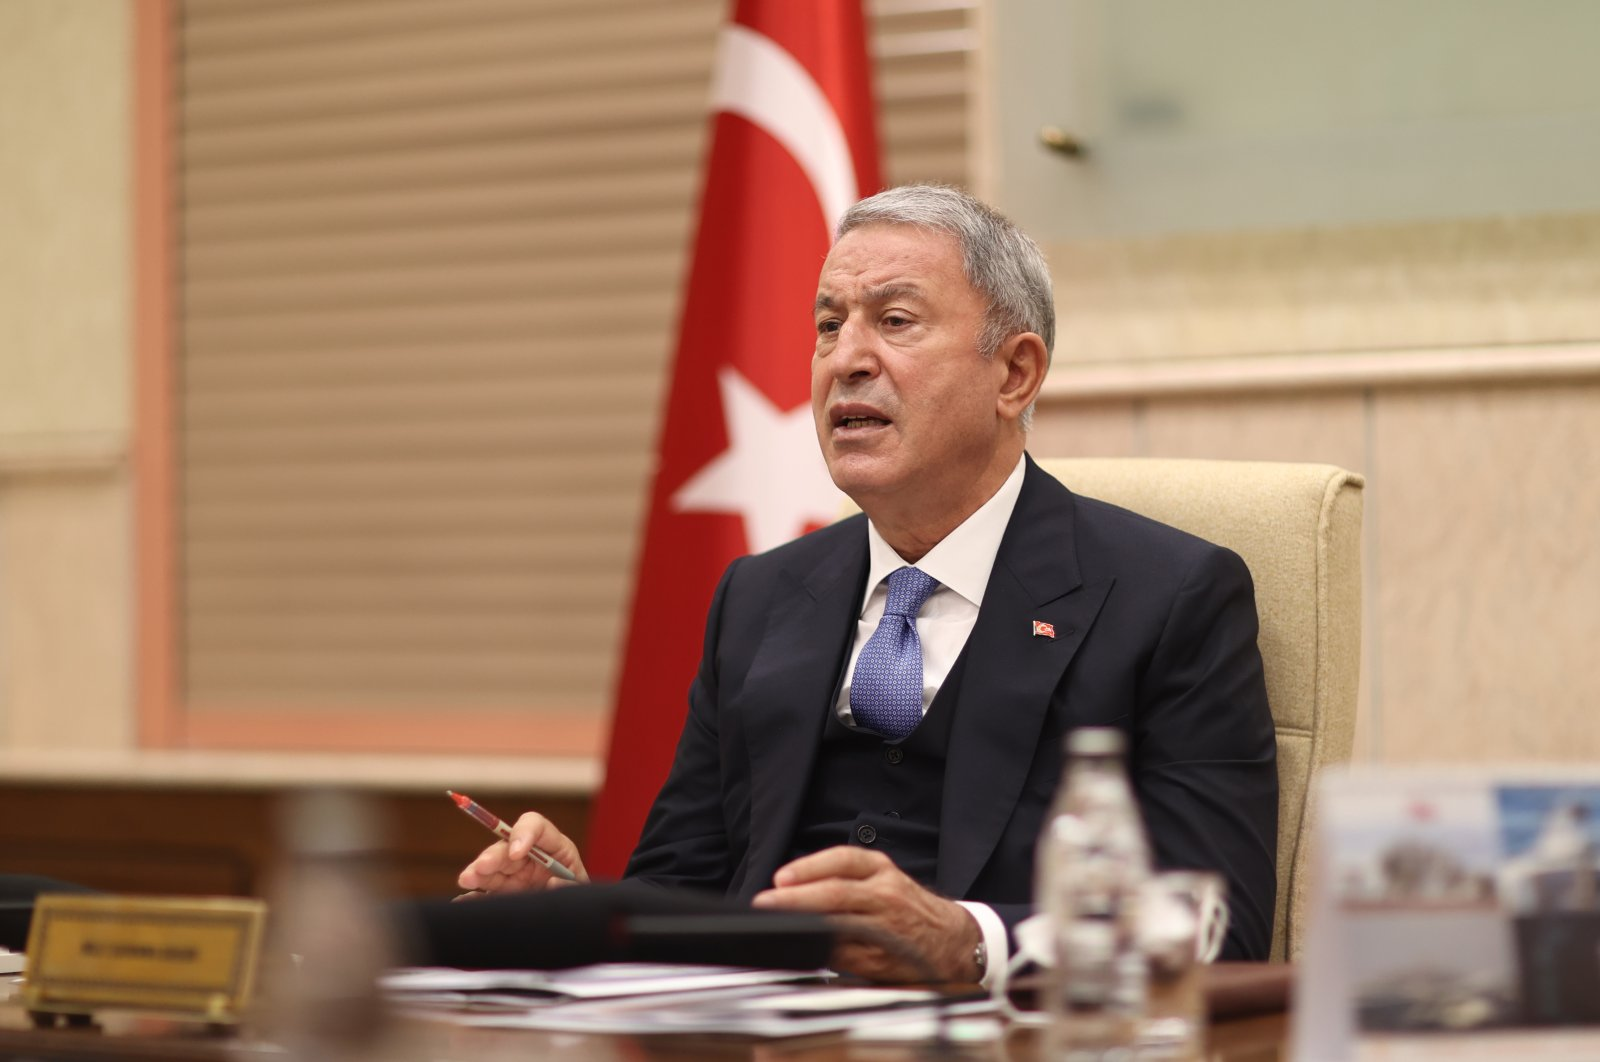 Defense Minister Hulusi Akar speaks during a videoconference with military officials, Sept. 27, 2021 (AA Photo)